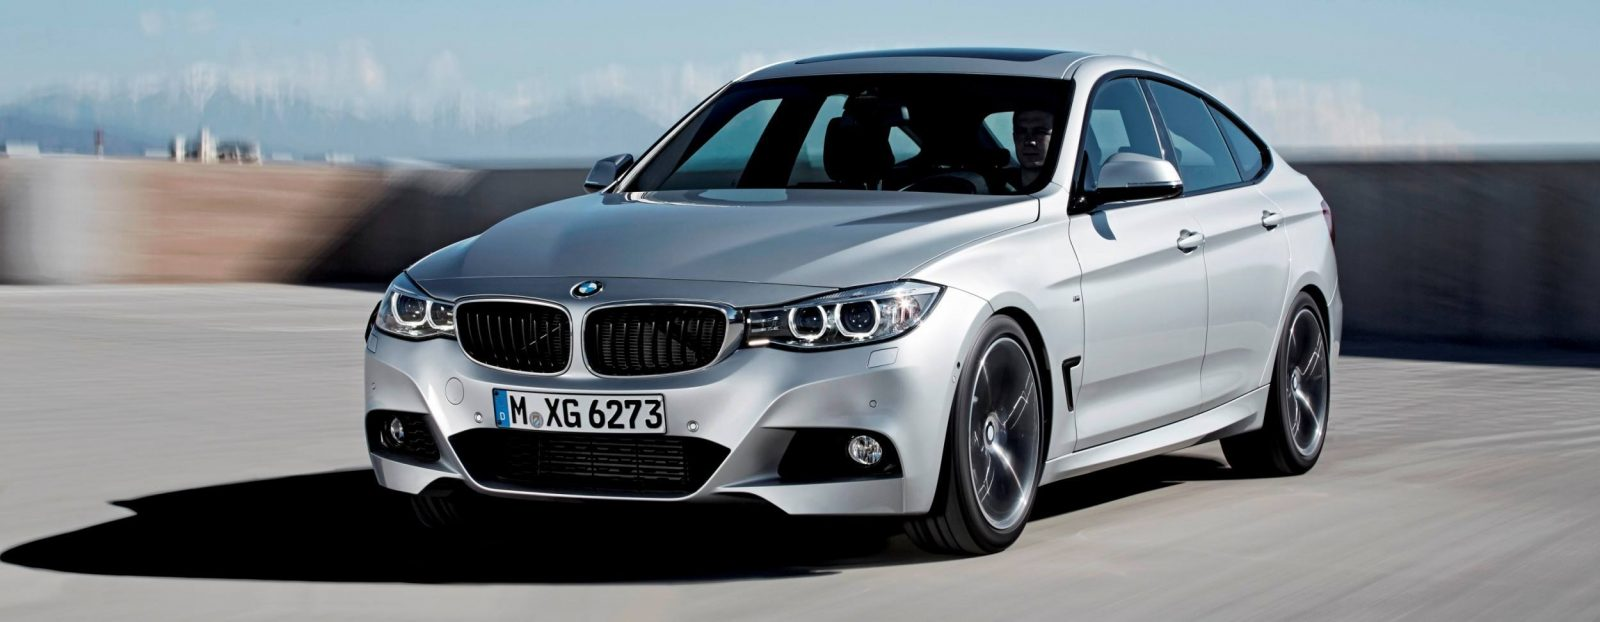 Best of Awards - 1000 miles at 100MPH - 2014 M Sport BMW 335i GT 58